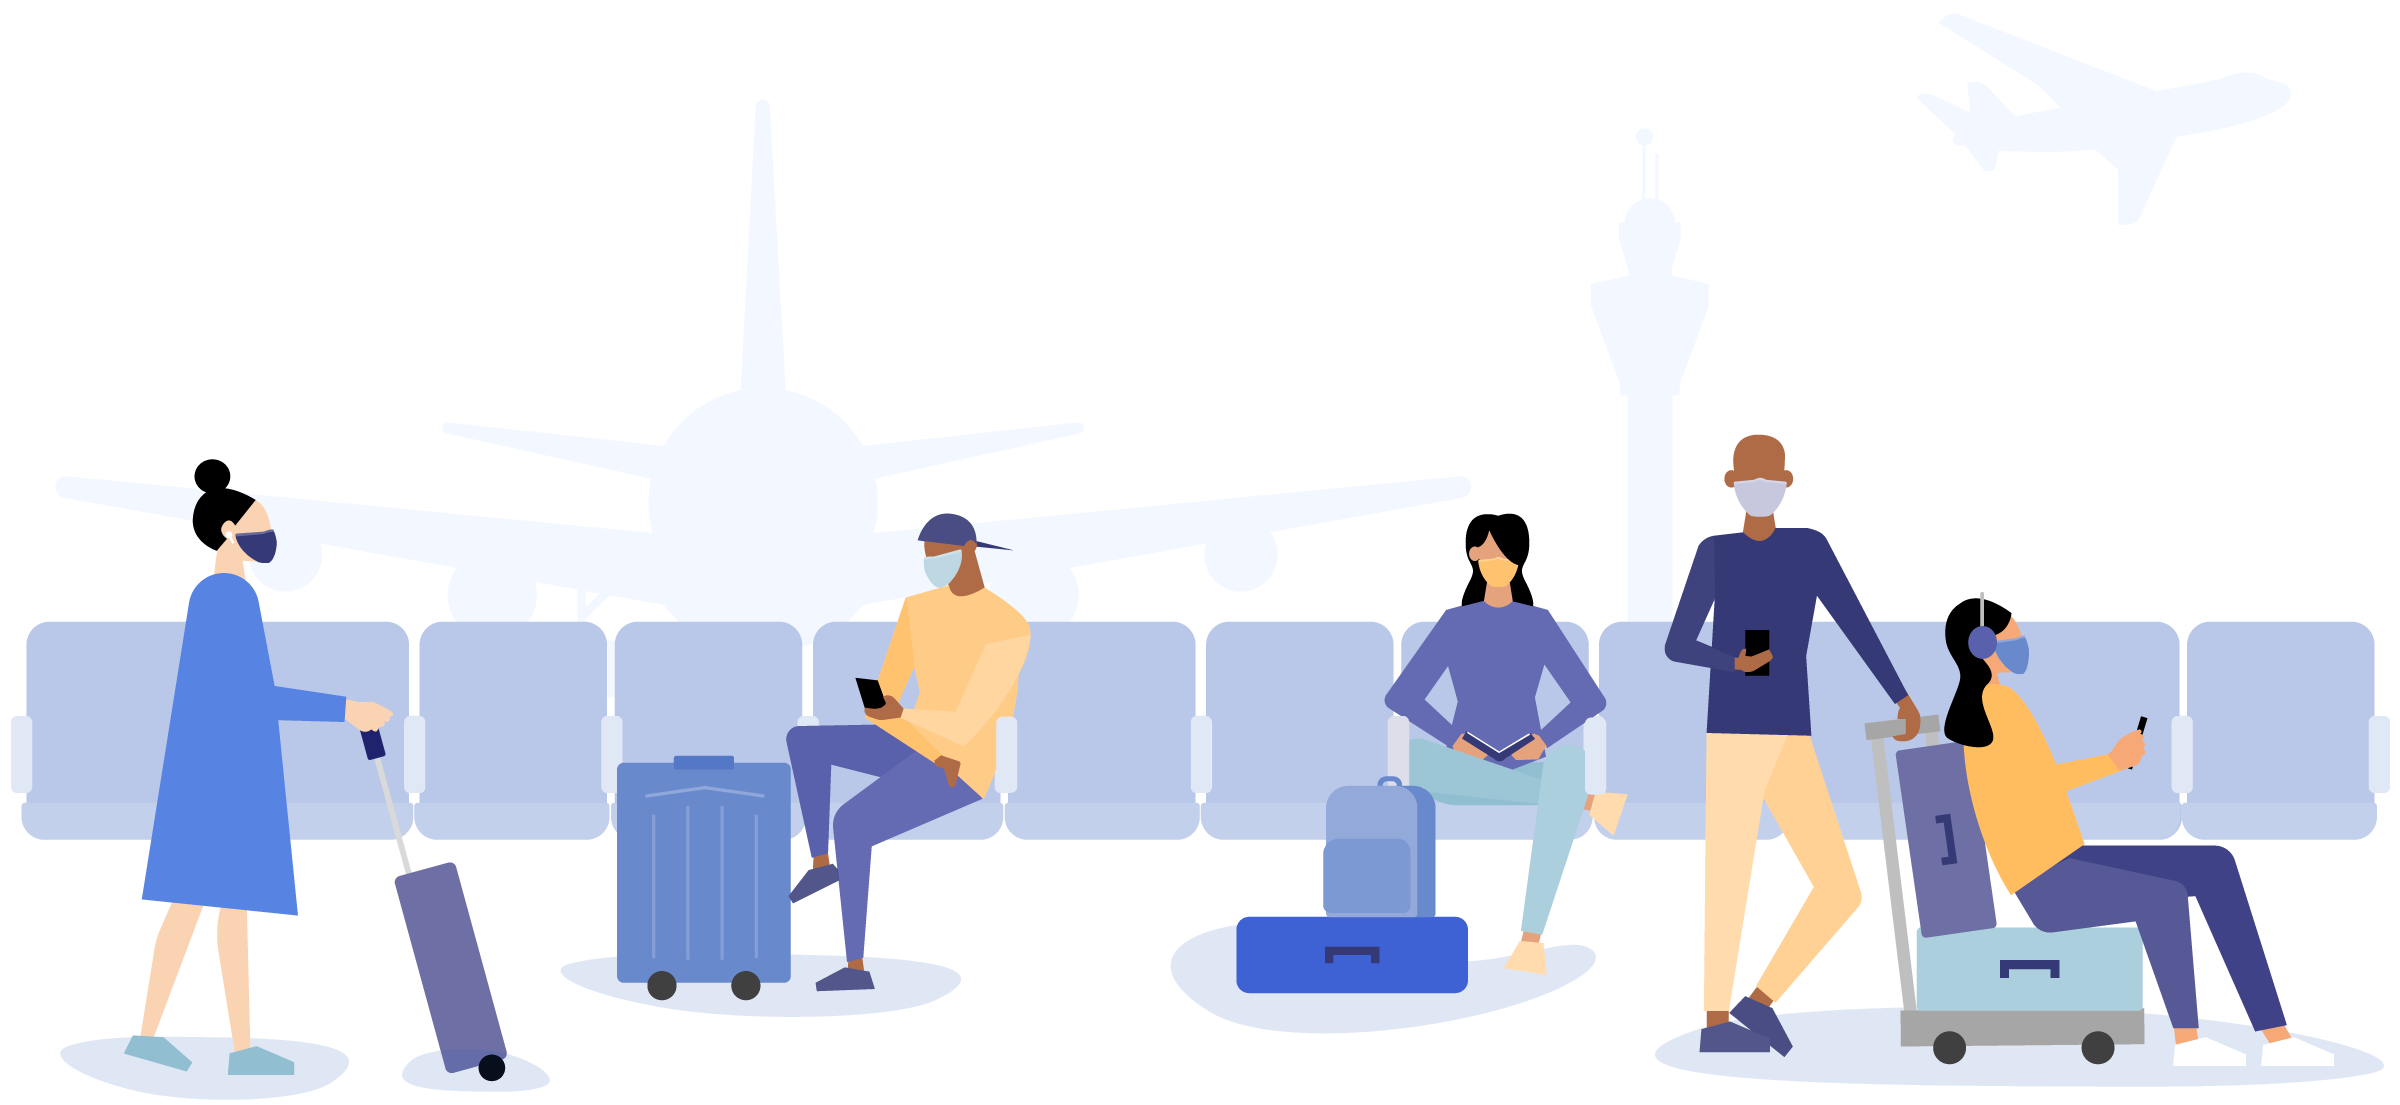 Illustration of 6 people waiting at the airport waiting for their group flight